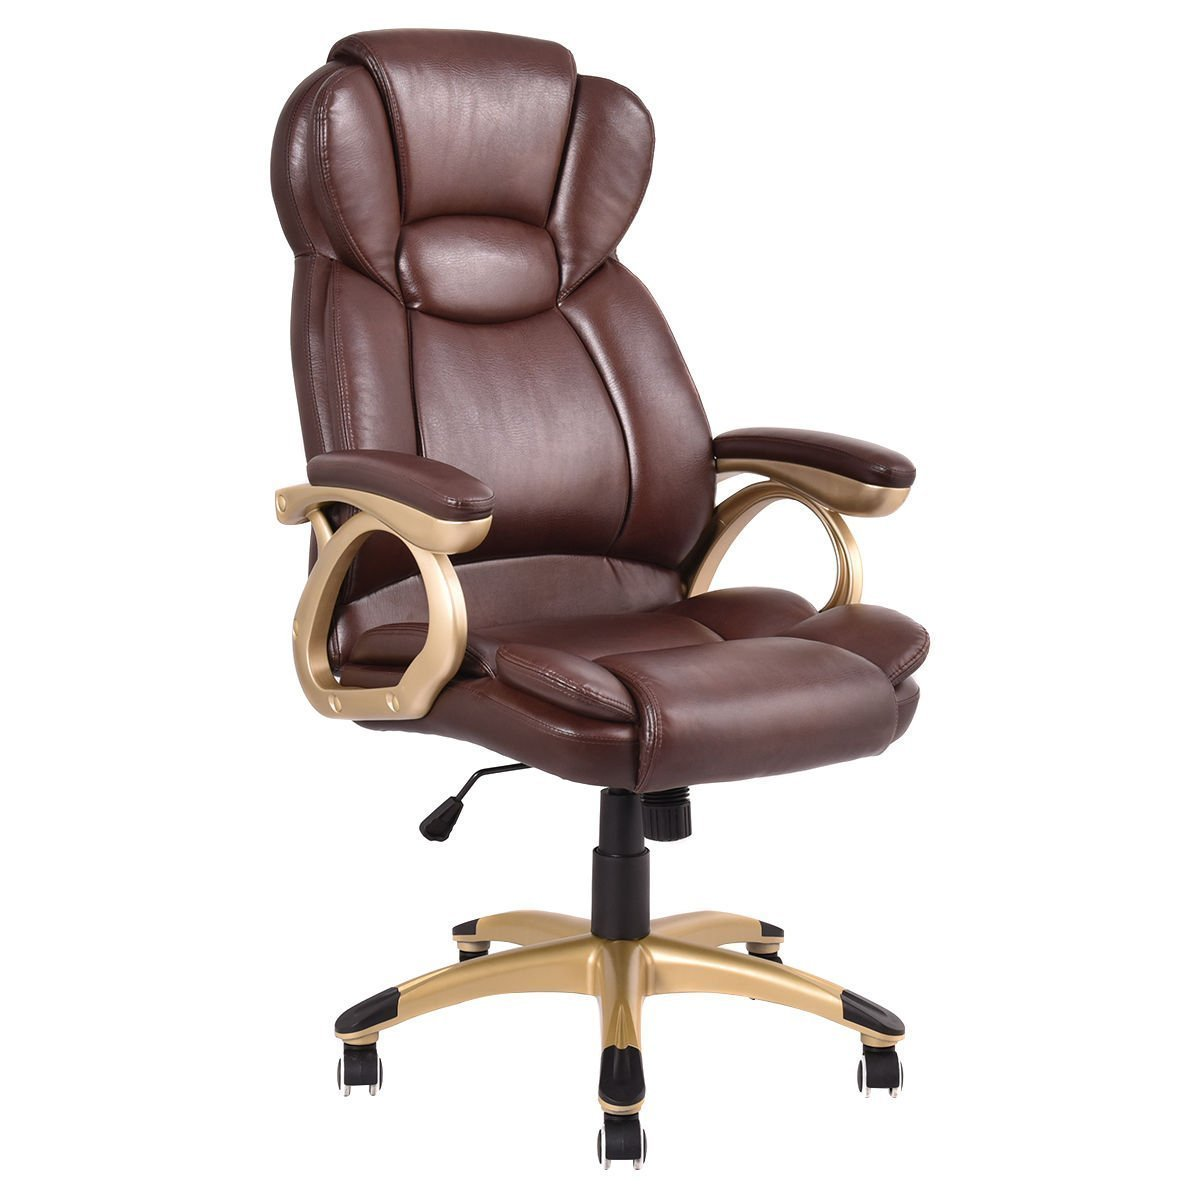 Photo Aeron Chair By Herman Miller Images Stupendous